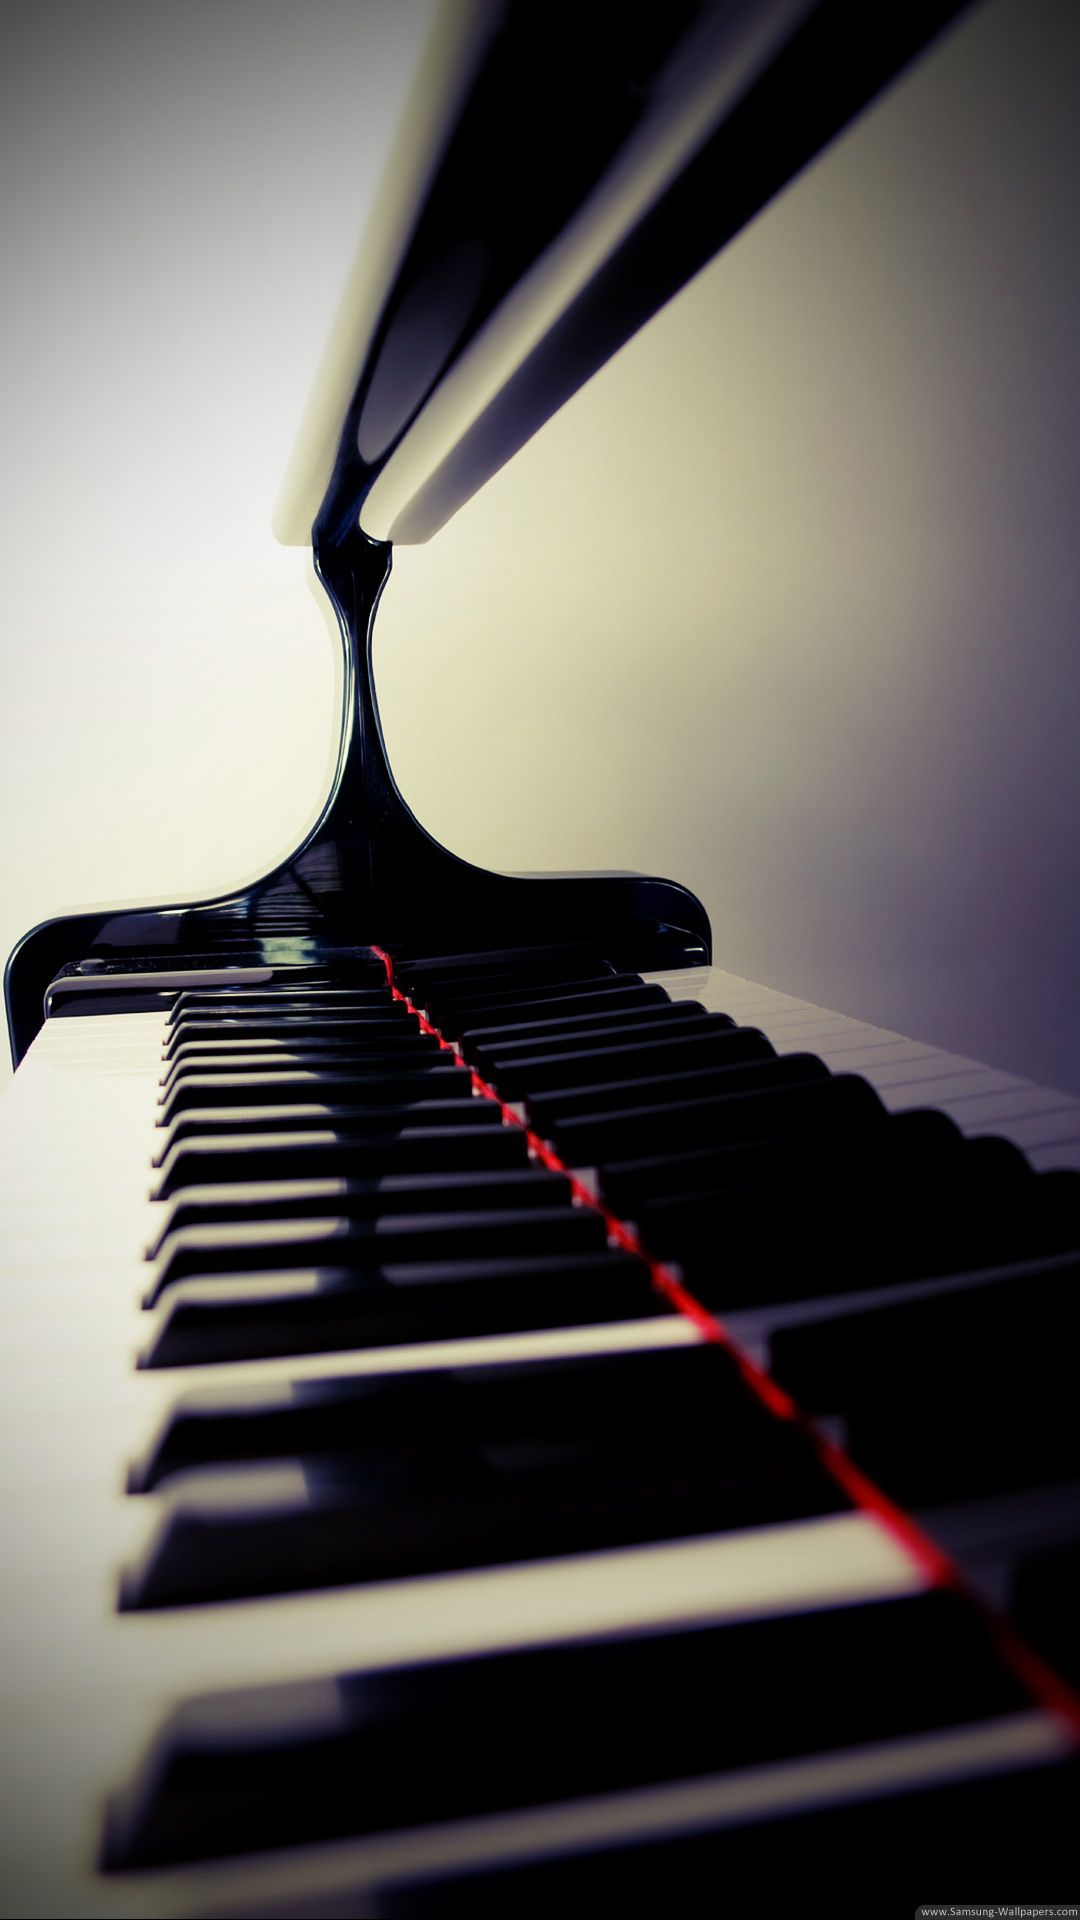 70 Music Iphone Wallpapers For Music Manias Music Wallpaper Piano Photography Piano